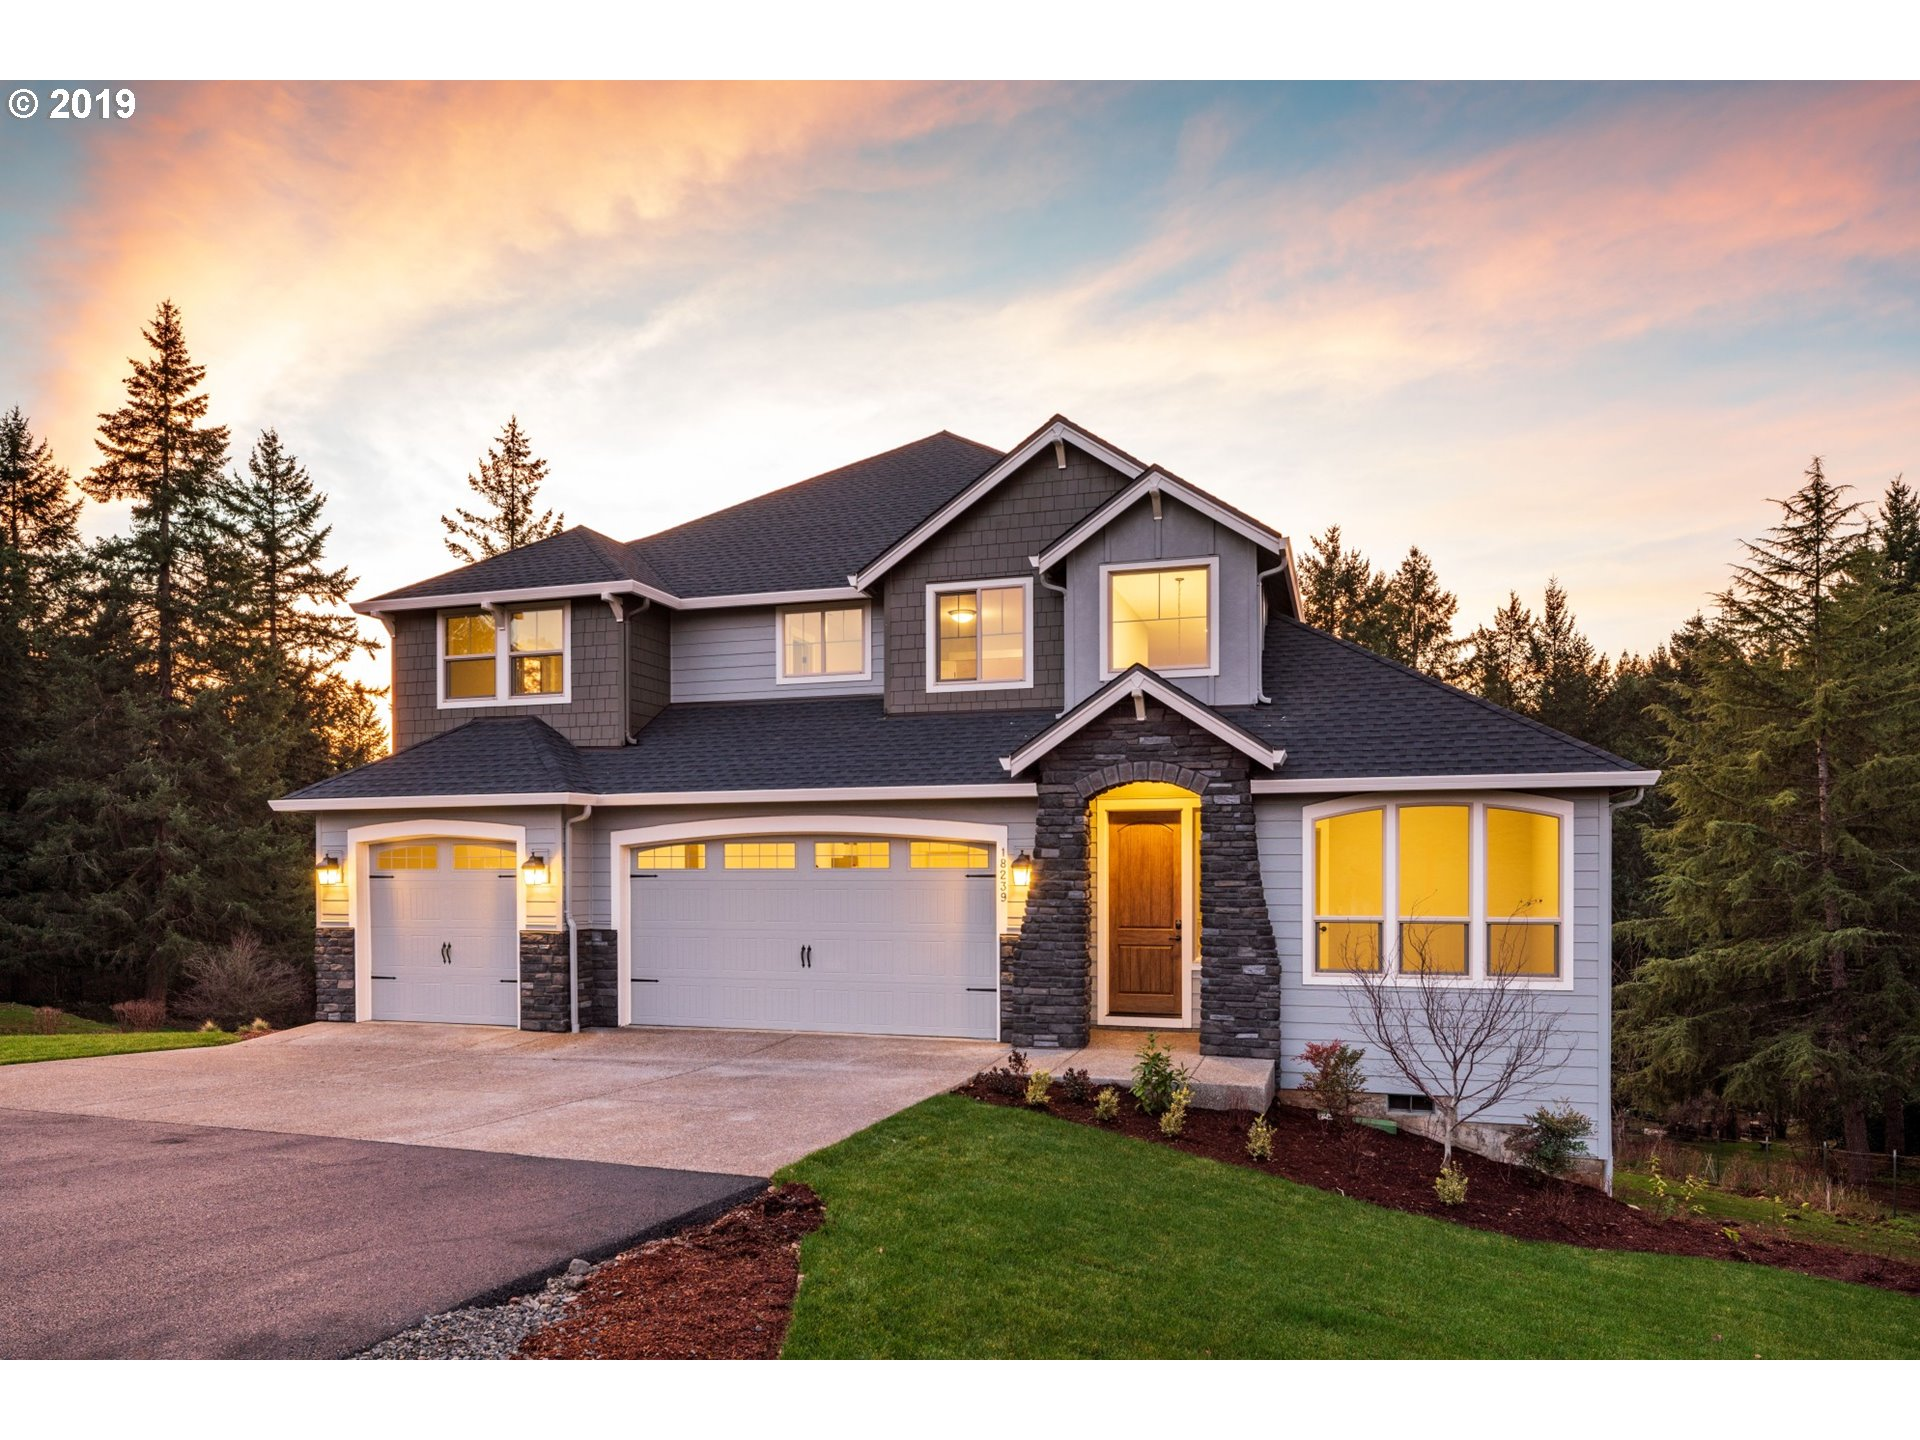 This is what Oregon is all about! Beautiful spacious craftsman on two acres. Soaring Great room  with fireplace. Gourmet kitchen with slab island and double oven. Butler's pantry with formal dining. Large master suite on main floor! Three car garage and huge deck overlooking private grounds. Perfect!